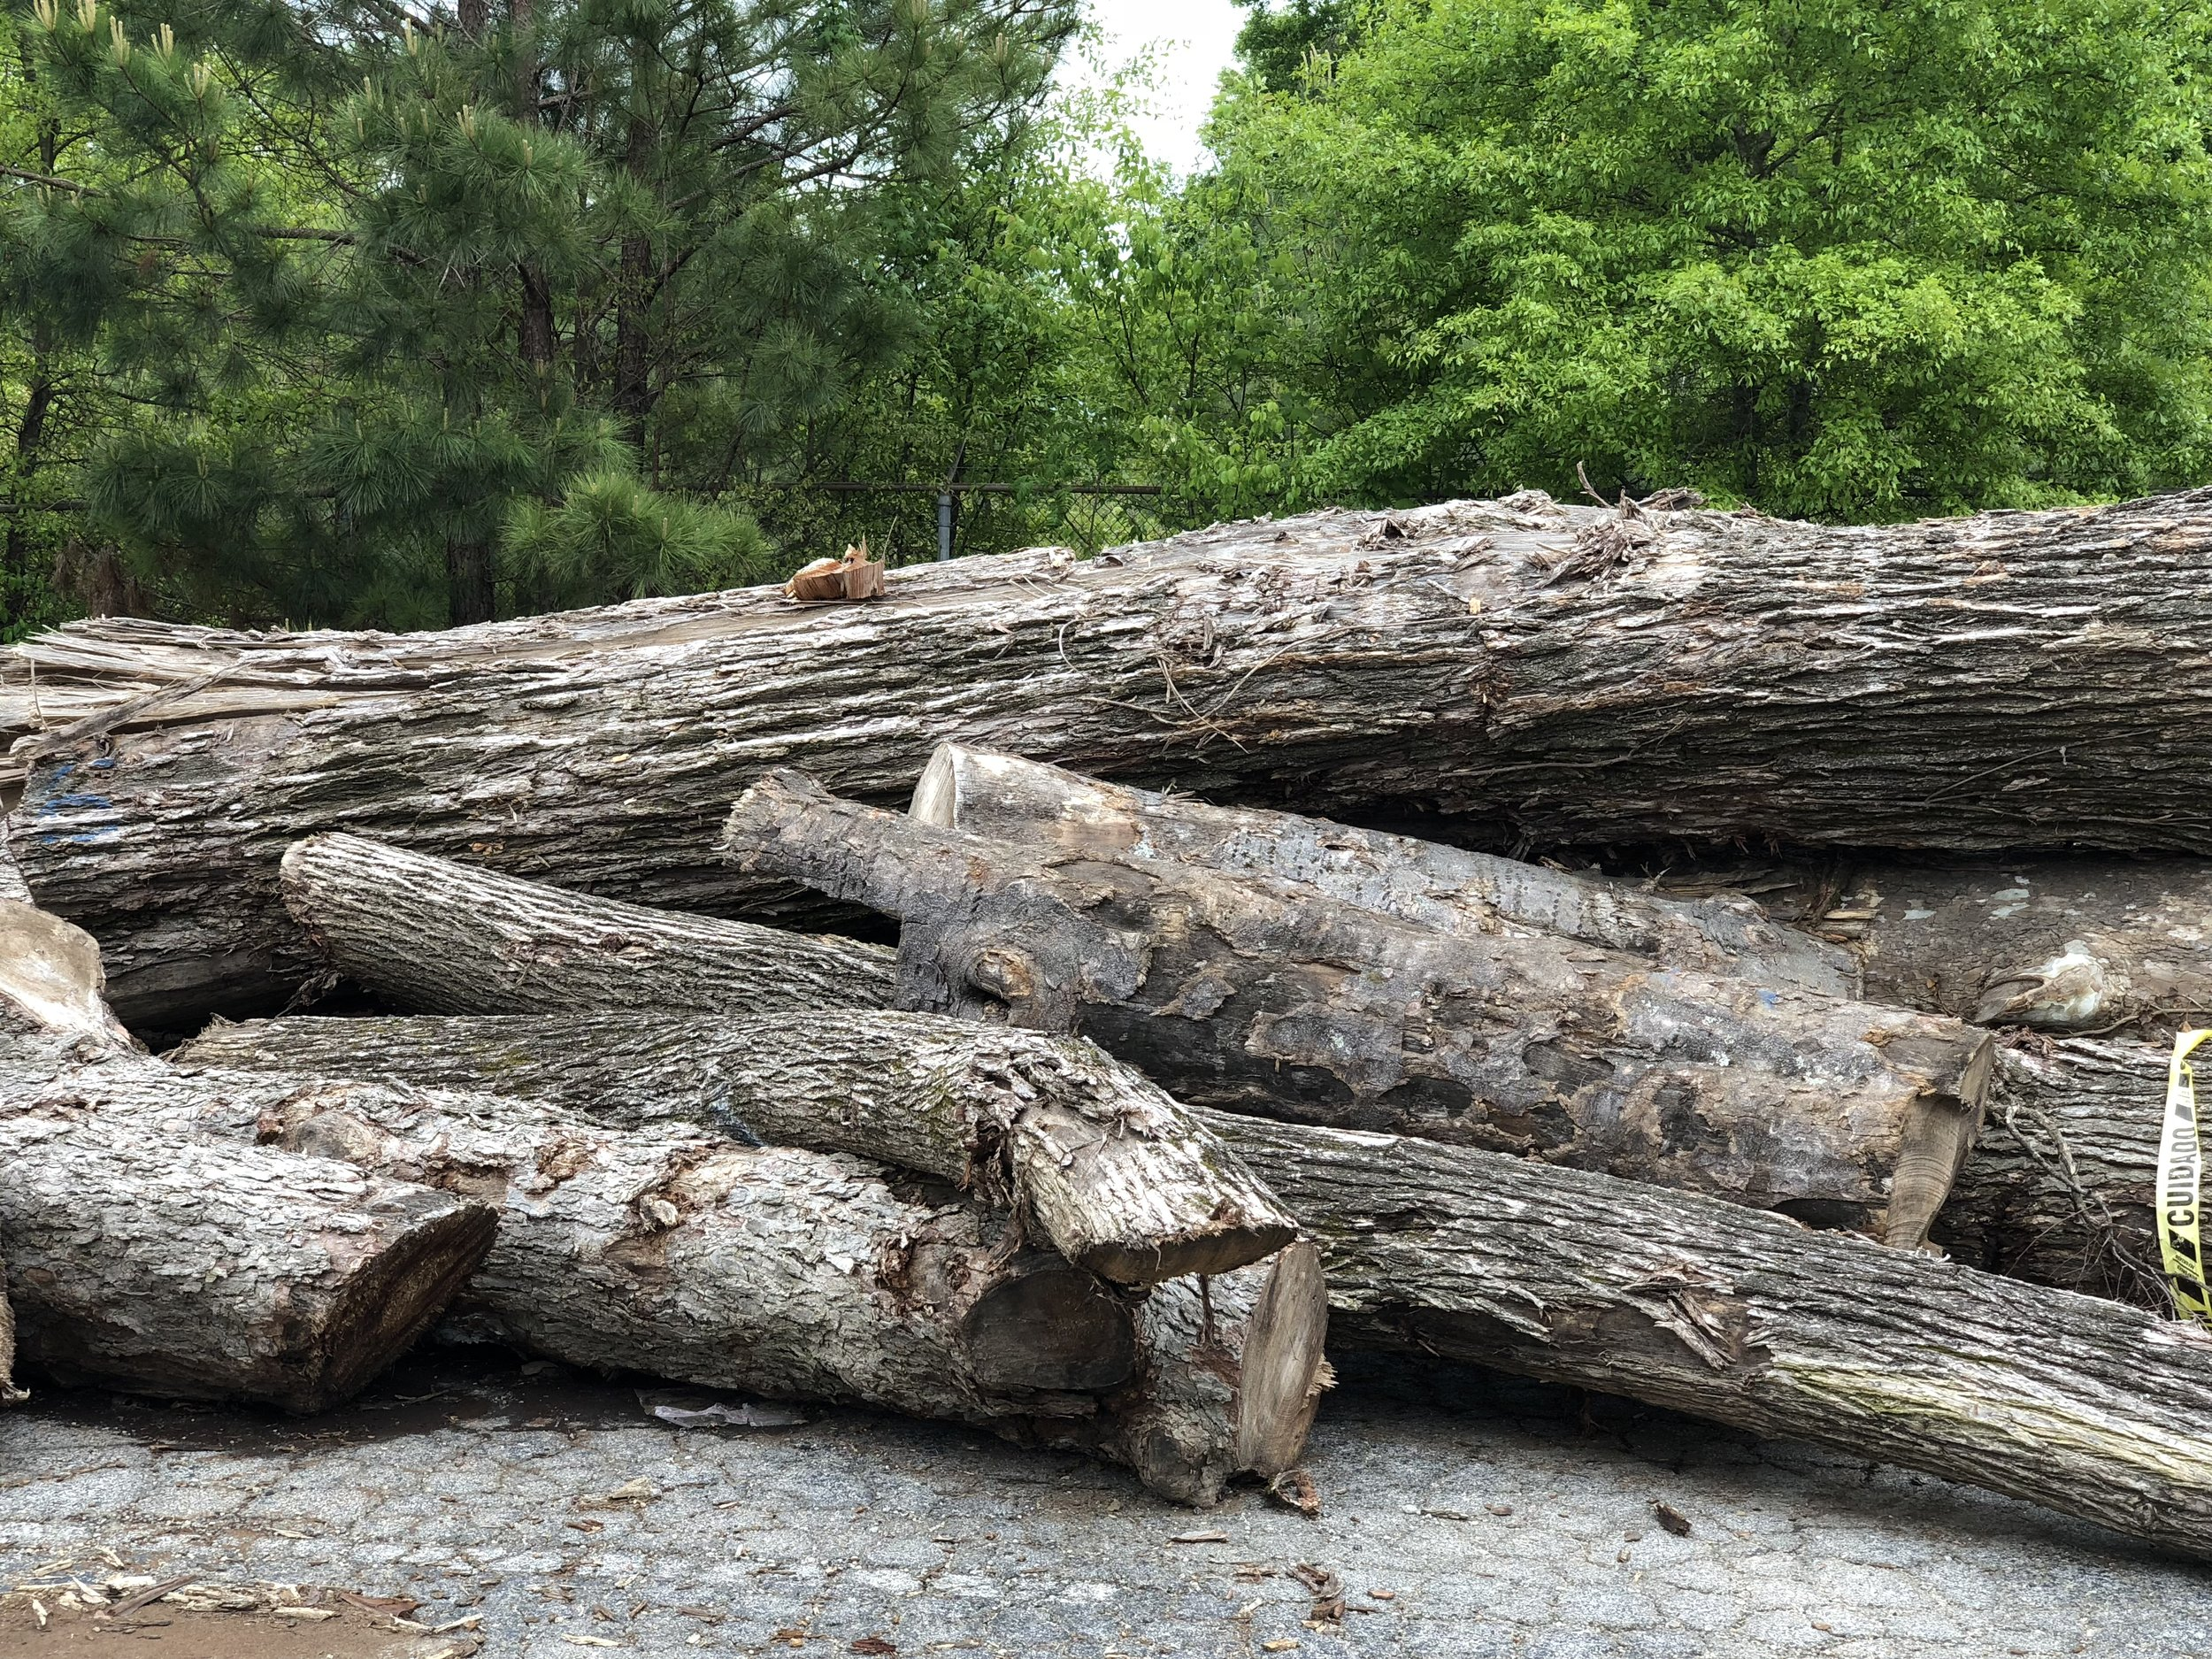 Eutree's lumber specialists are able to provide detailed recommendations and estimated board feet each log will yield for live edge slabs, flooring, paneling, beams or dimensional lumber.